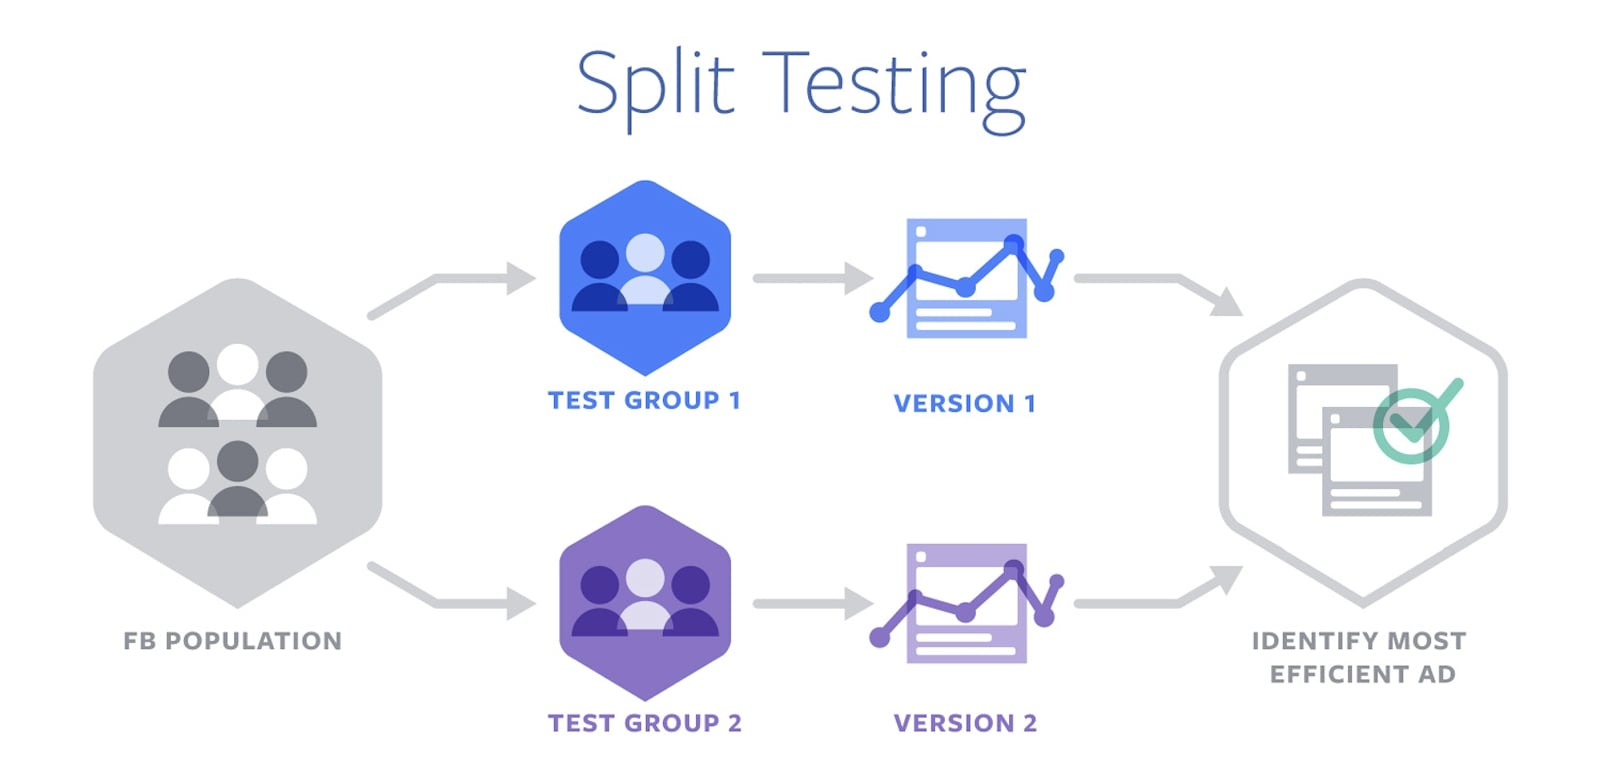 Split testing into groups to identify the most efficient ad